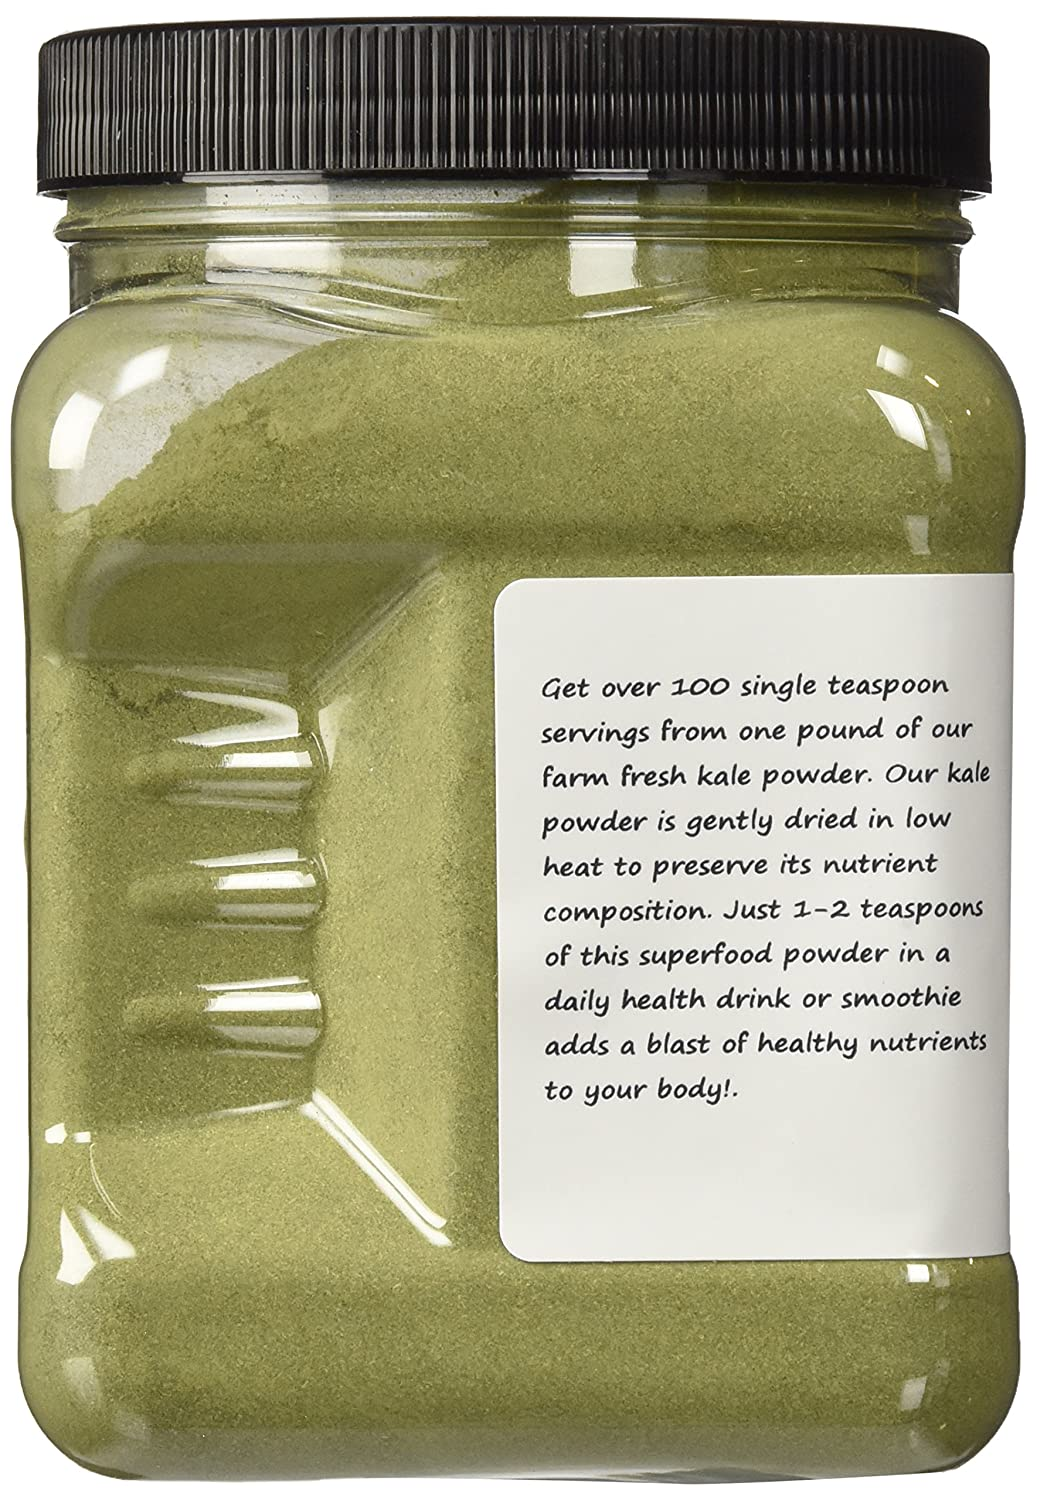 Is kale powder good for you